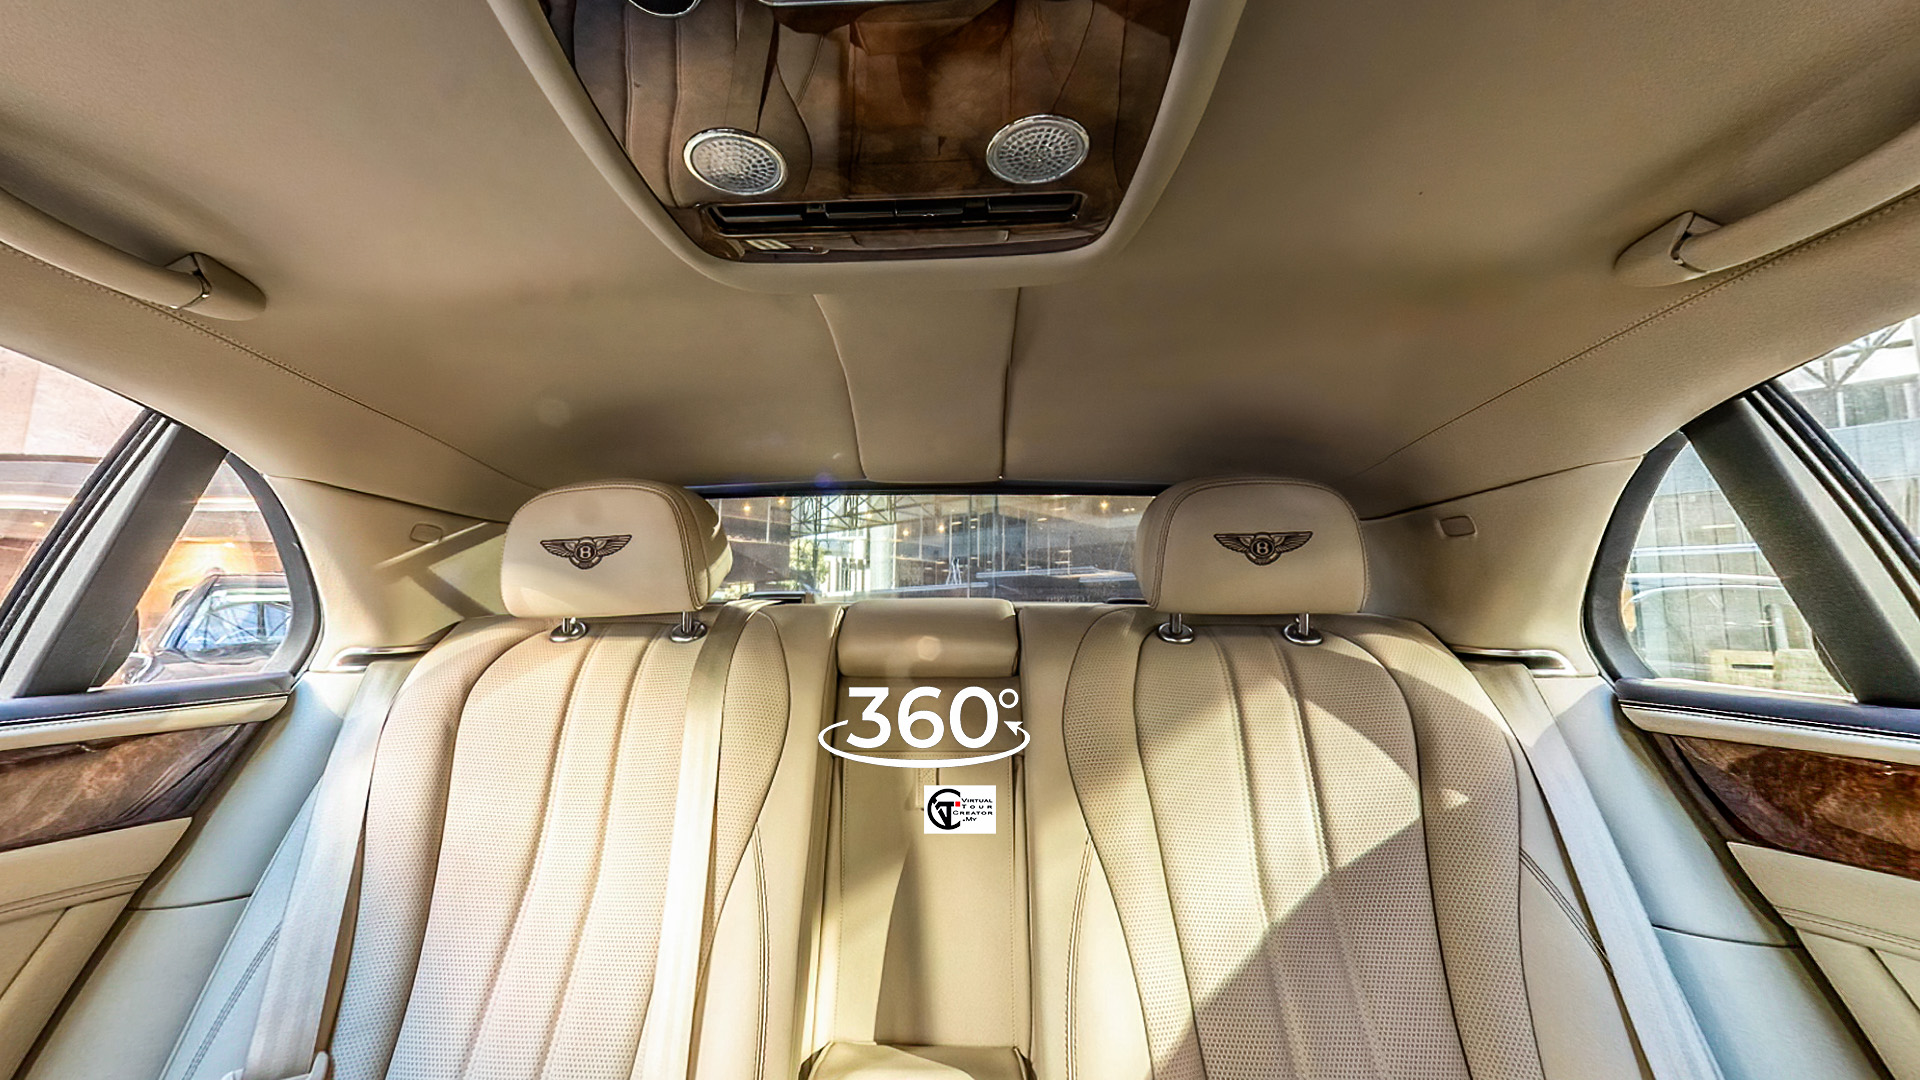 Bentley rear seat Car sellers and buyers always have a major issue to display the vehicle interior completely. Traditional Photography can excellent show the outside of a car but not inside. We can do VR 360 interior tour for Lamborghini 360, Bentley 360, Bezza 360, Tesla 360, Audi 360, Mercedes 360, BMW 360, Jaguar 360